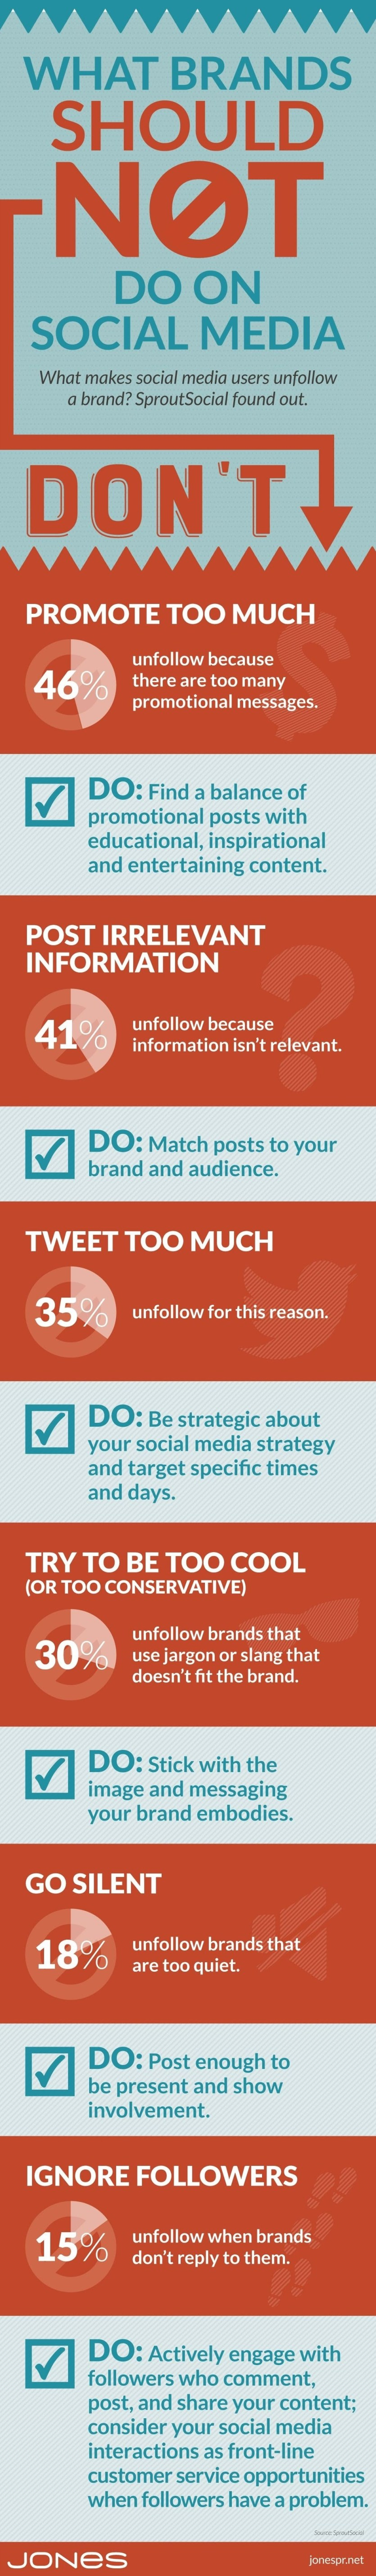 What Brands Should Not Do on Social Media [Infographic] | Social Media Today